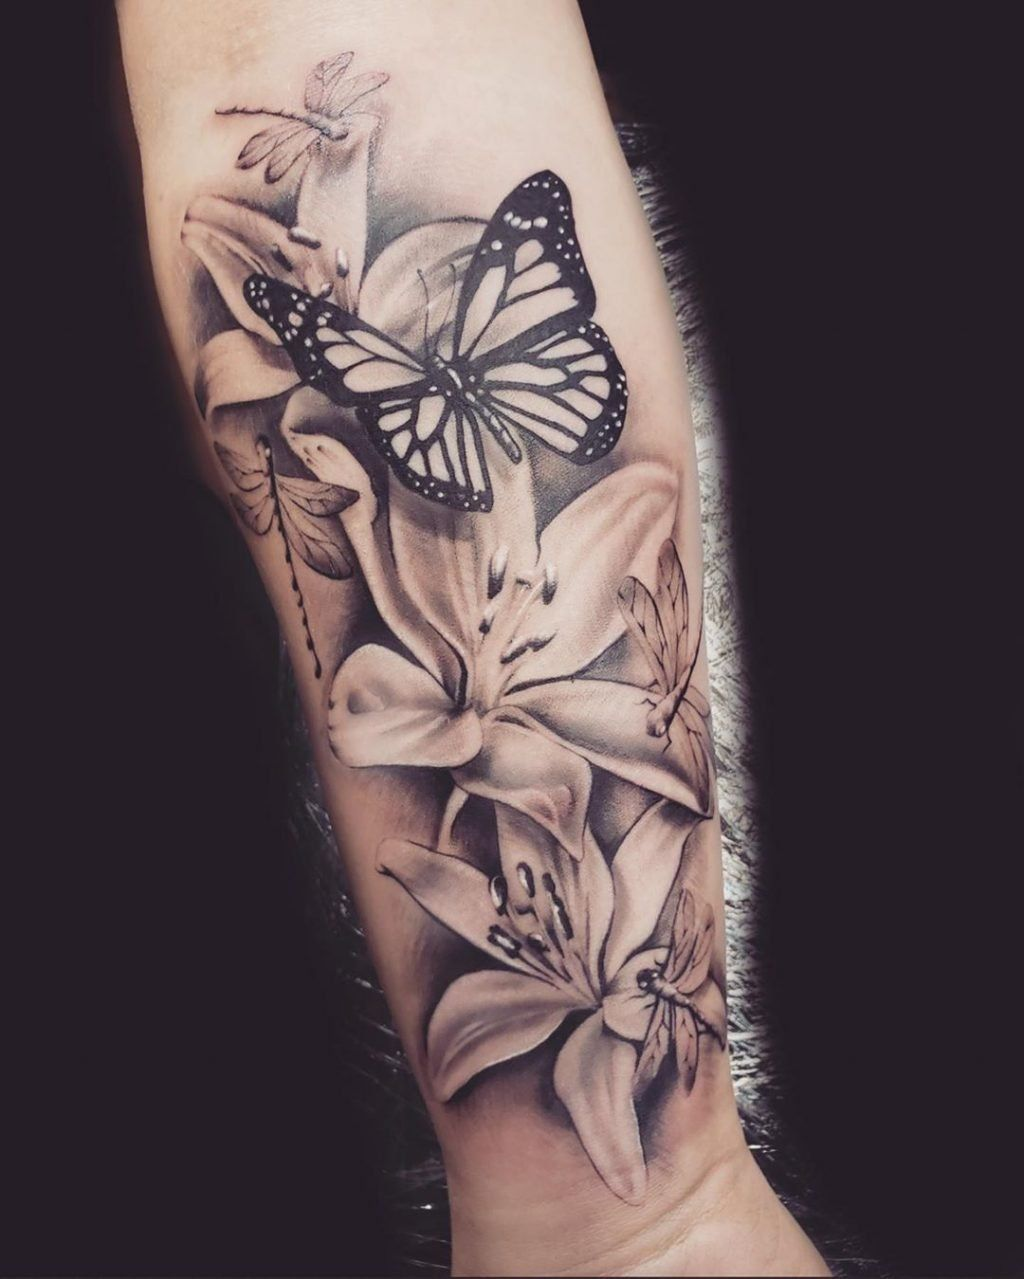 41 Most Beautiful Butterfly Tattoo Ideas For Everyone Jessica Pins In 2020 Butterfly Tattoo Rose And Butterfly Tattoo Flower Tattoo Shoulder